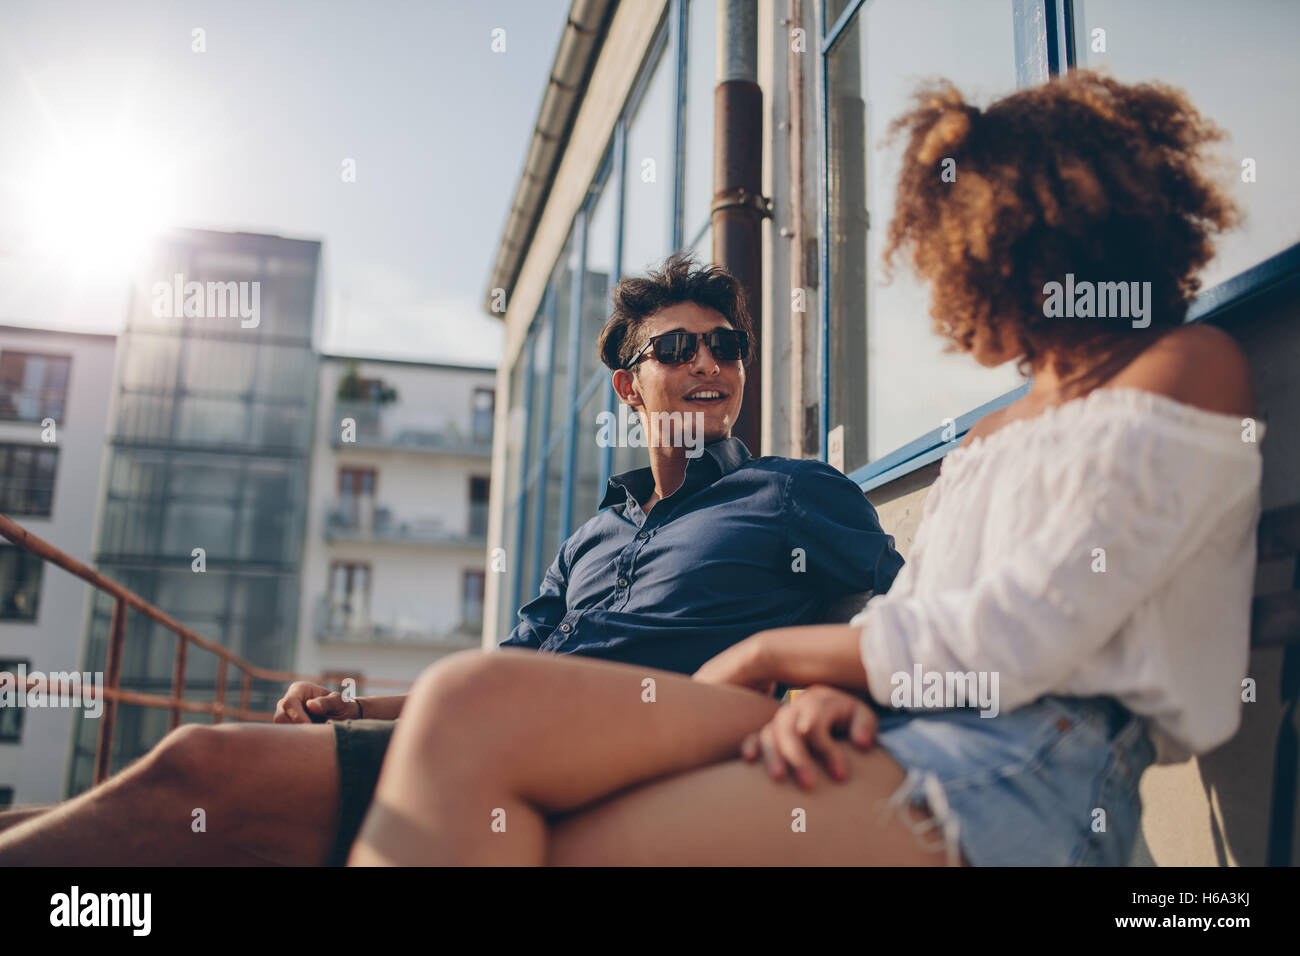 Young man and woman sitting in the balcony and talking. Young couple spending quality time together. - Stock Image